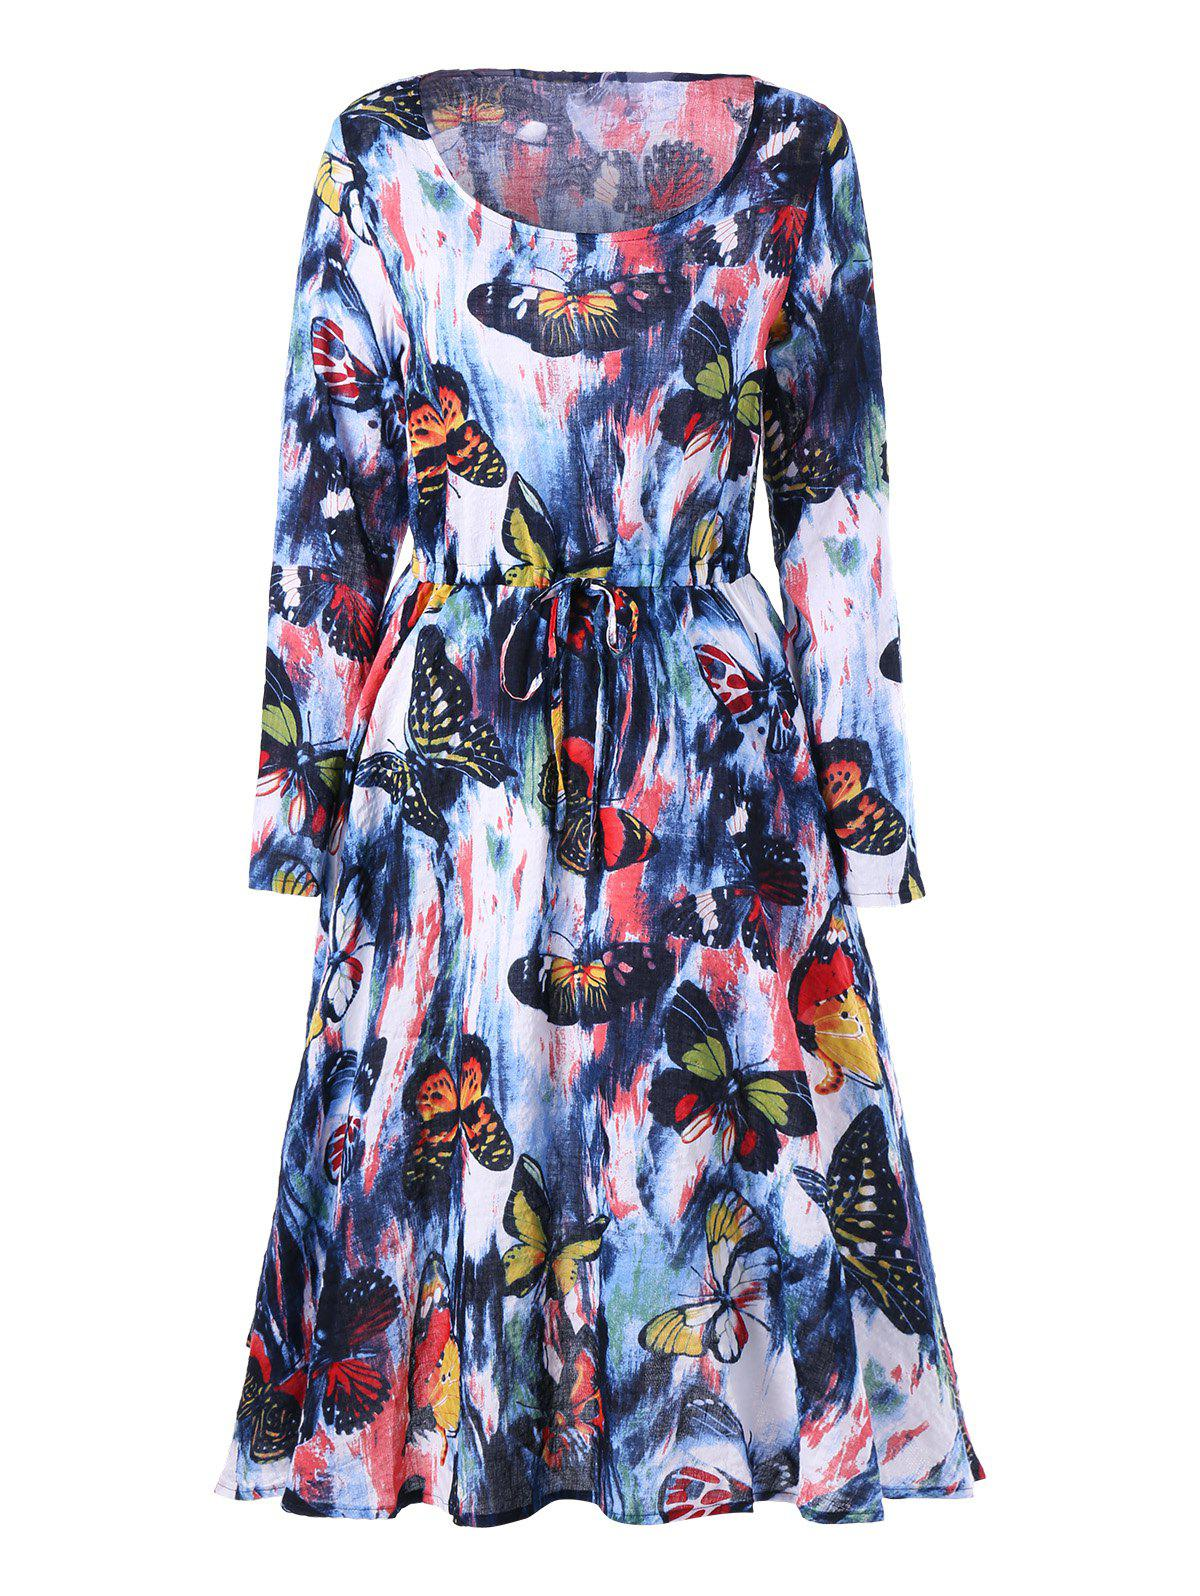 Drawstring Butterfly Printed Long Sleeve Dress - COLORMIX M